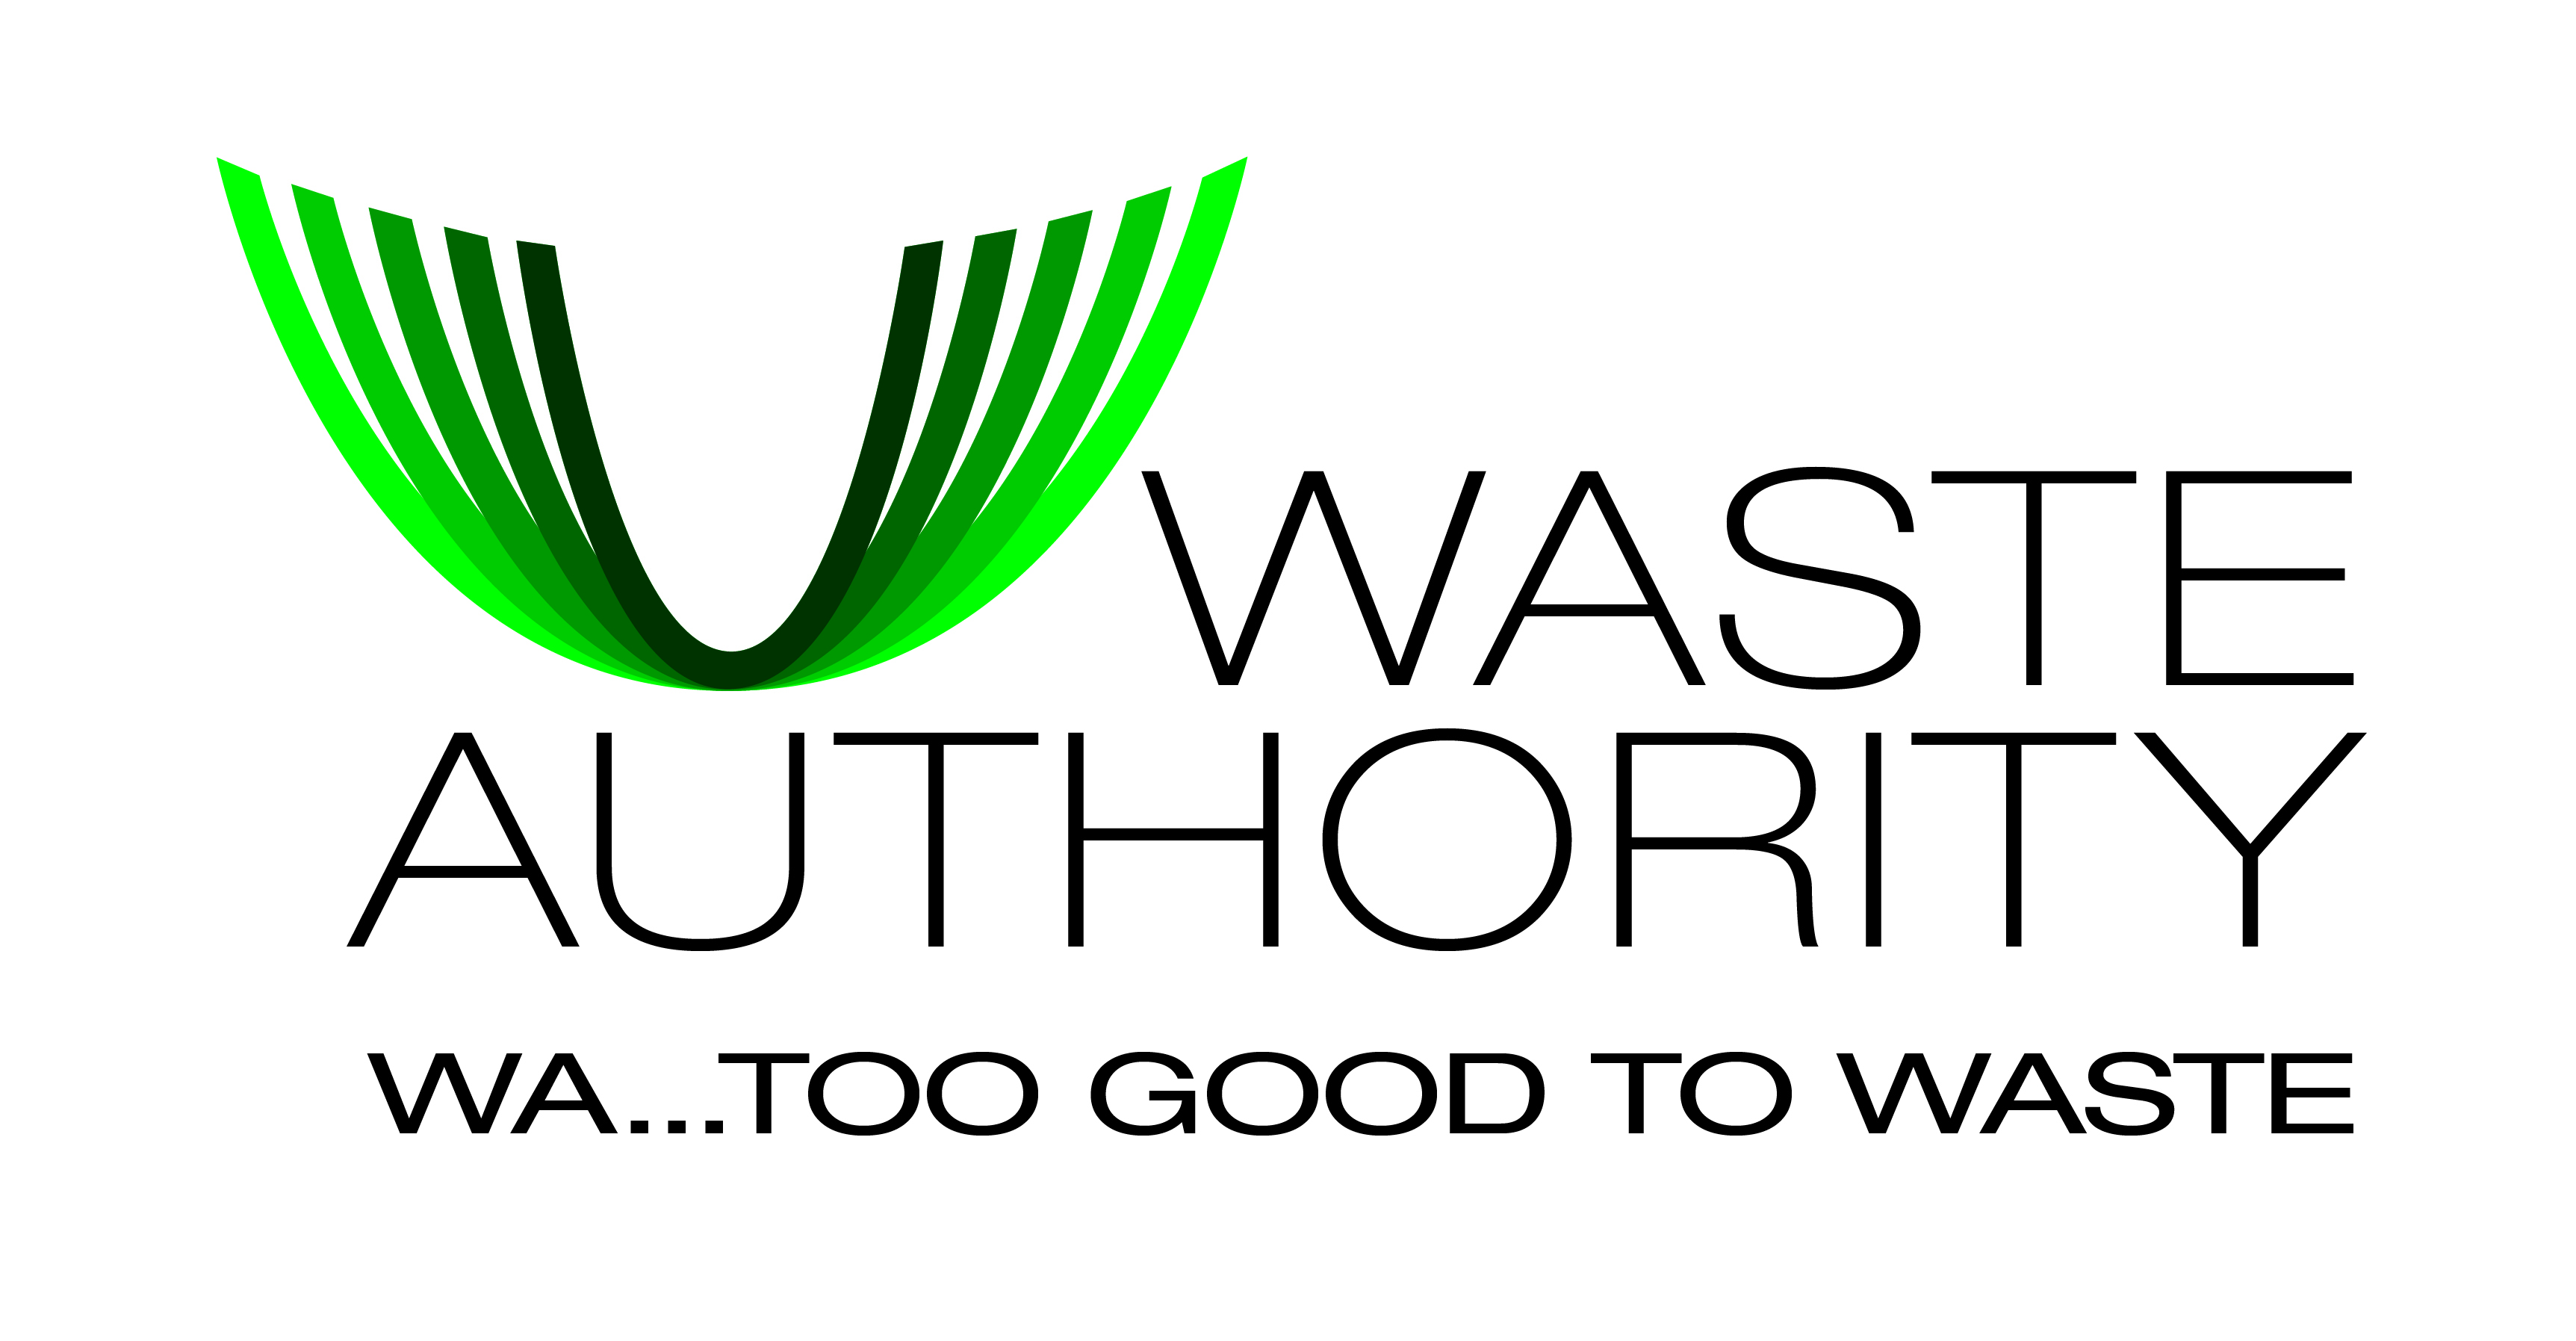 Waste authority